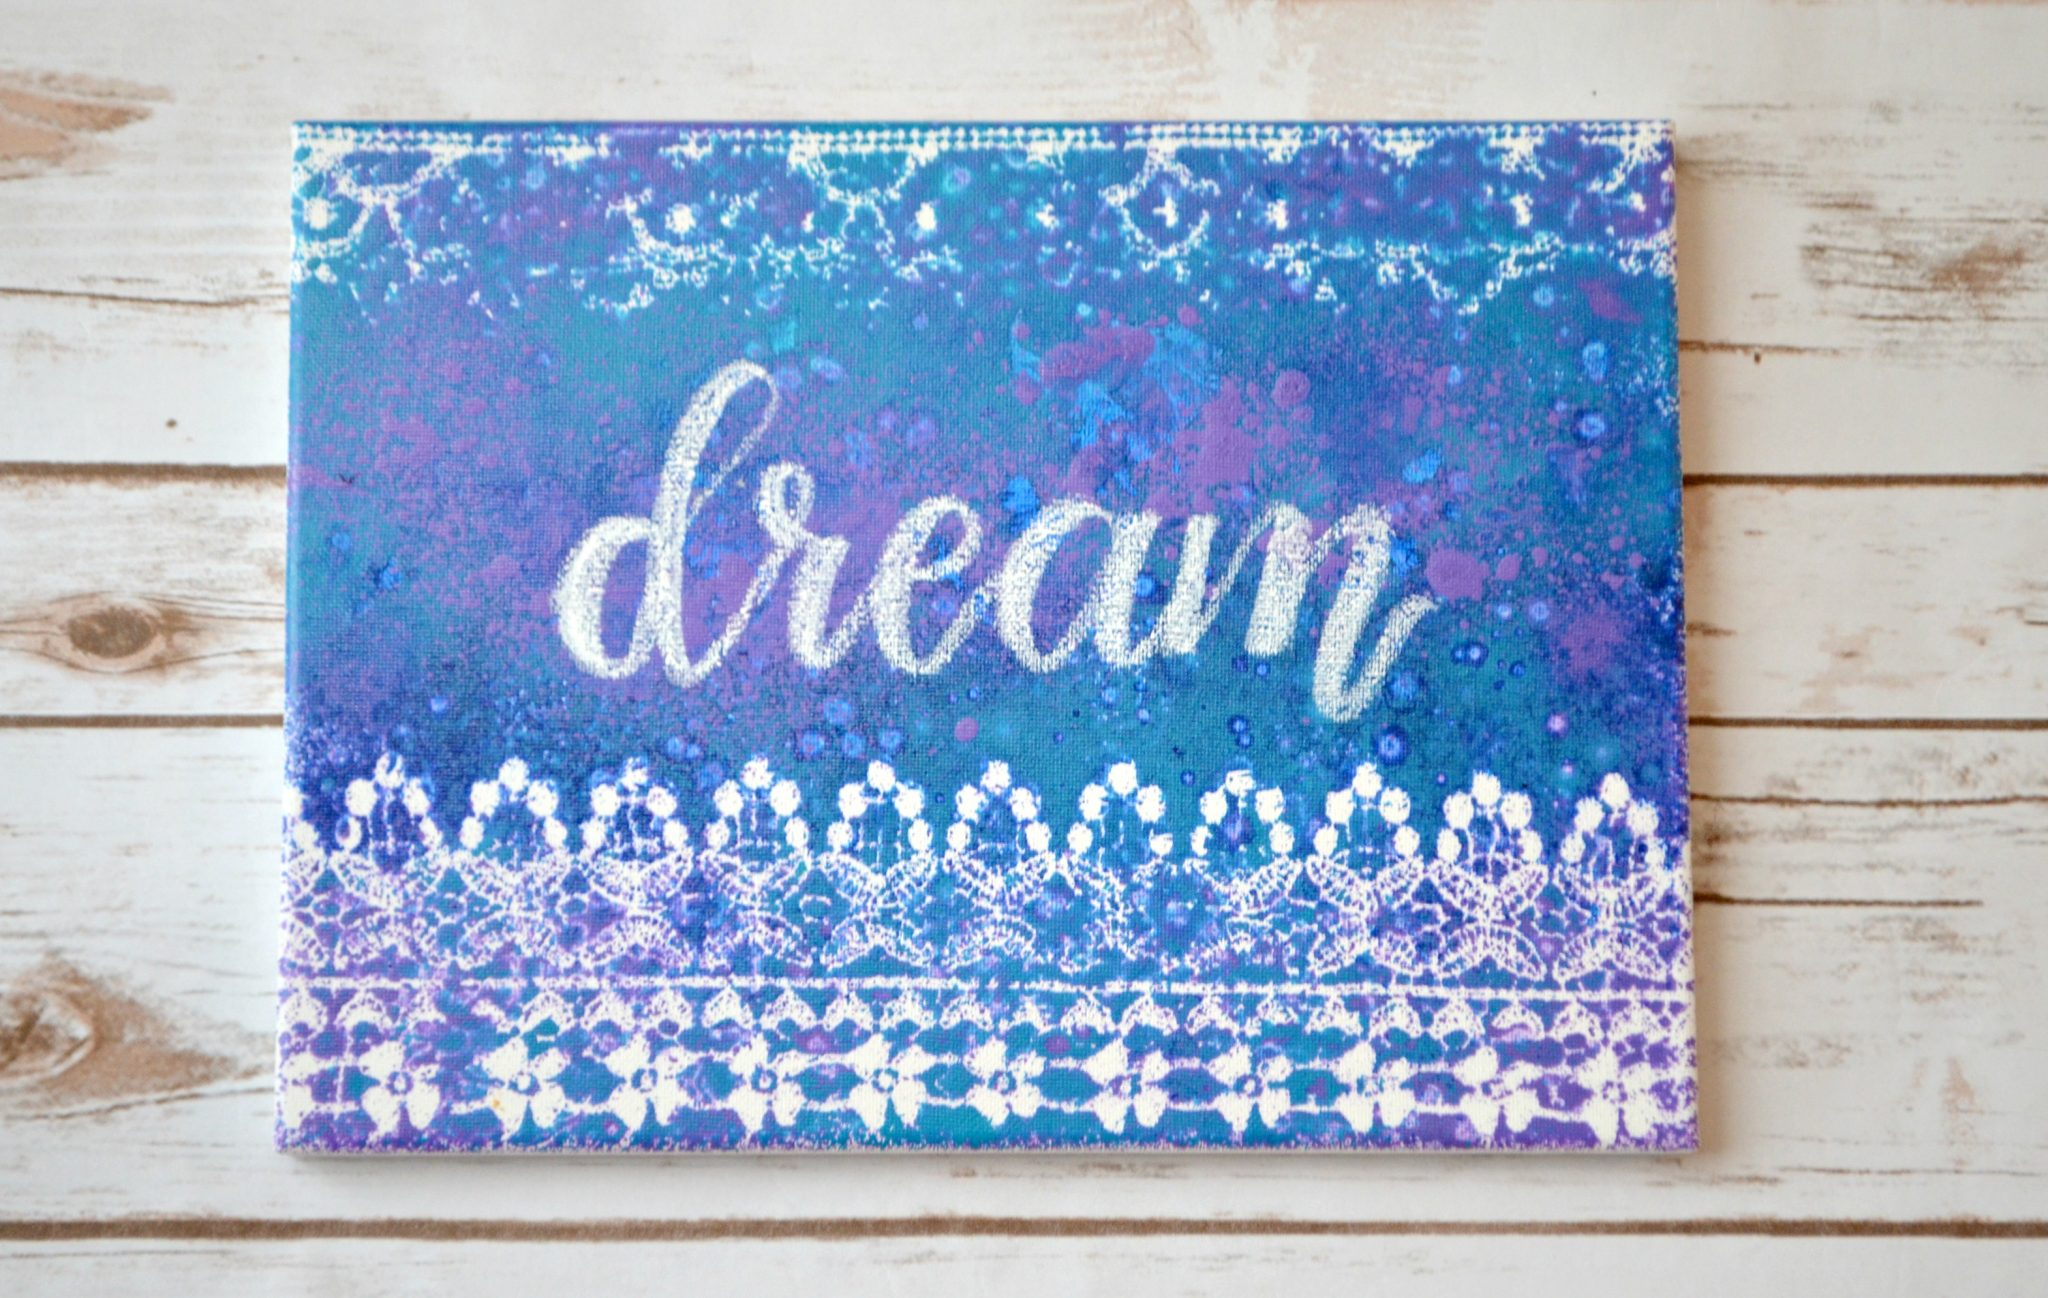 Fun With Paint: Spray Splatter Canvas